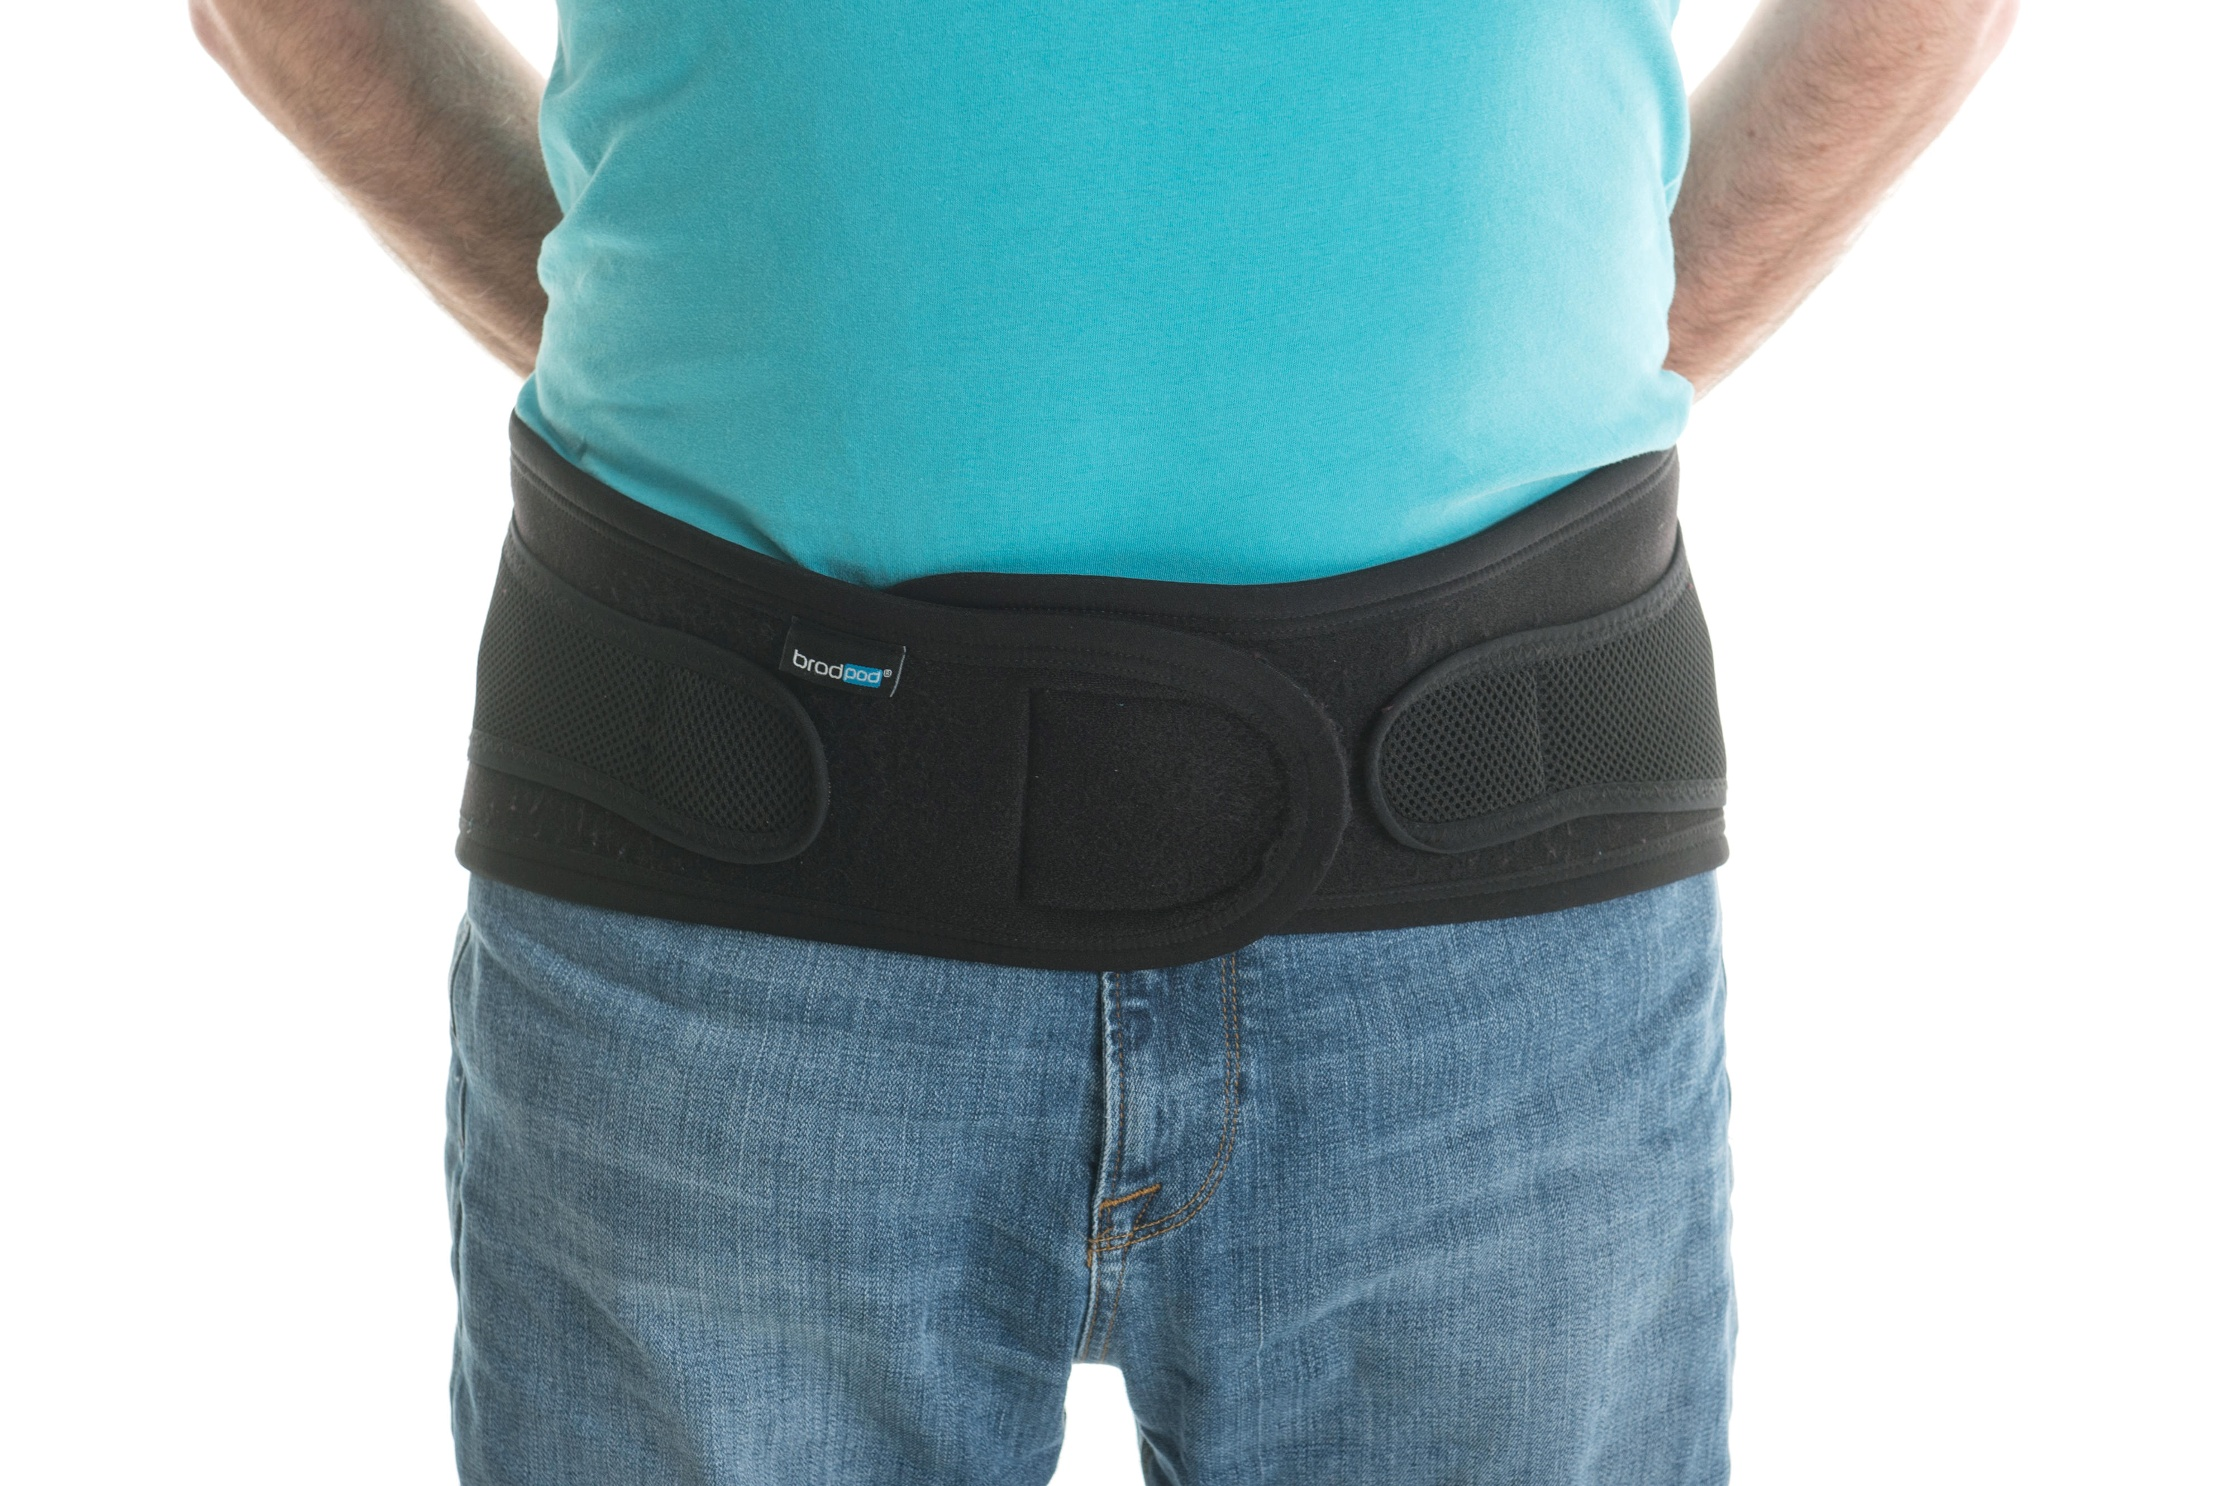 Magnetic belt for back pain